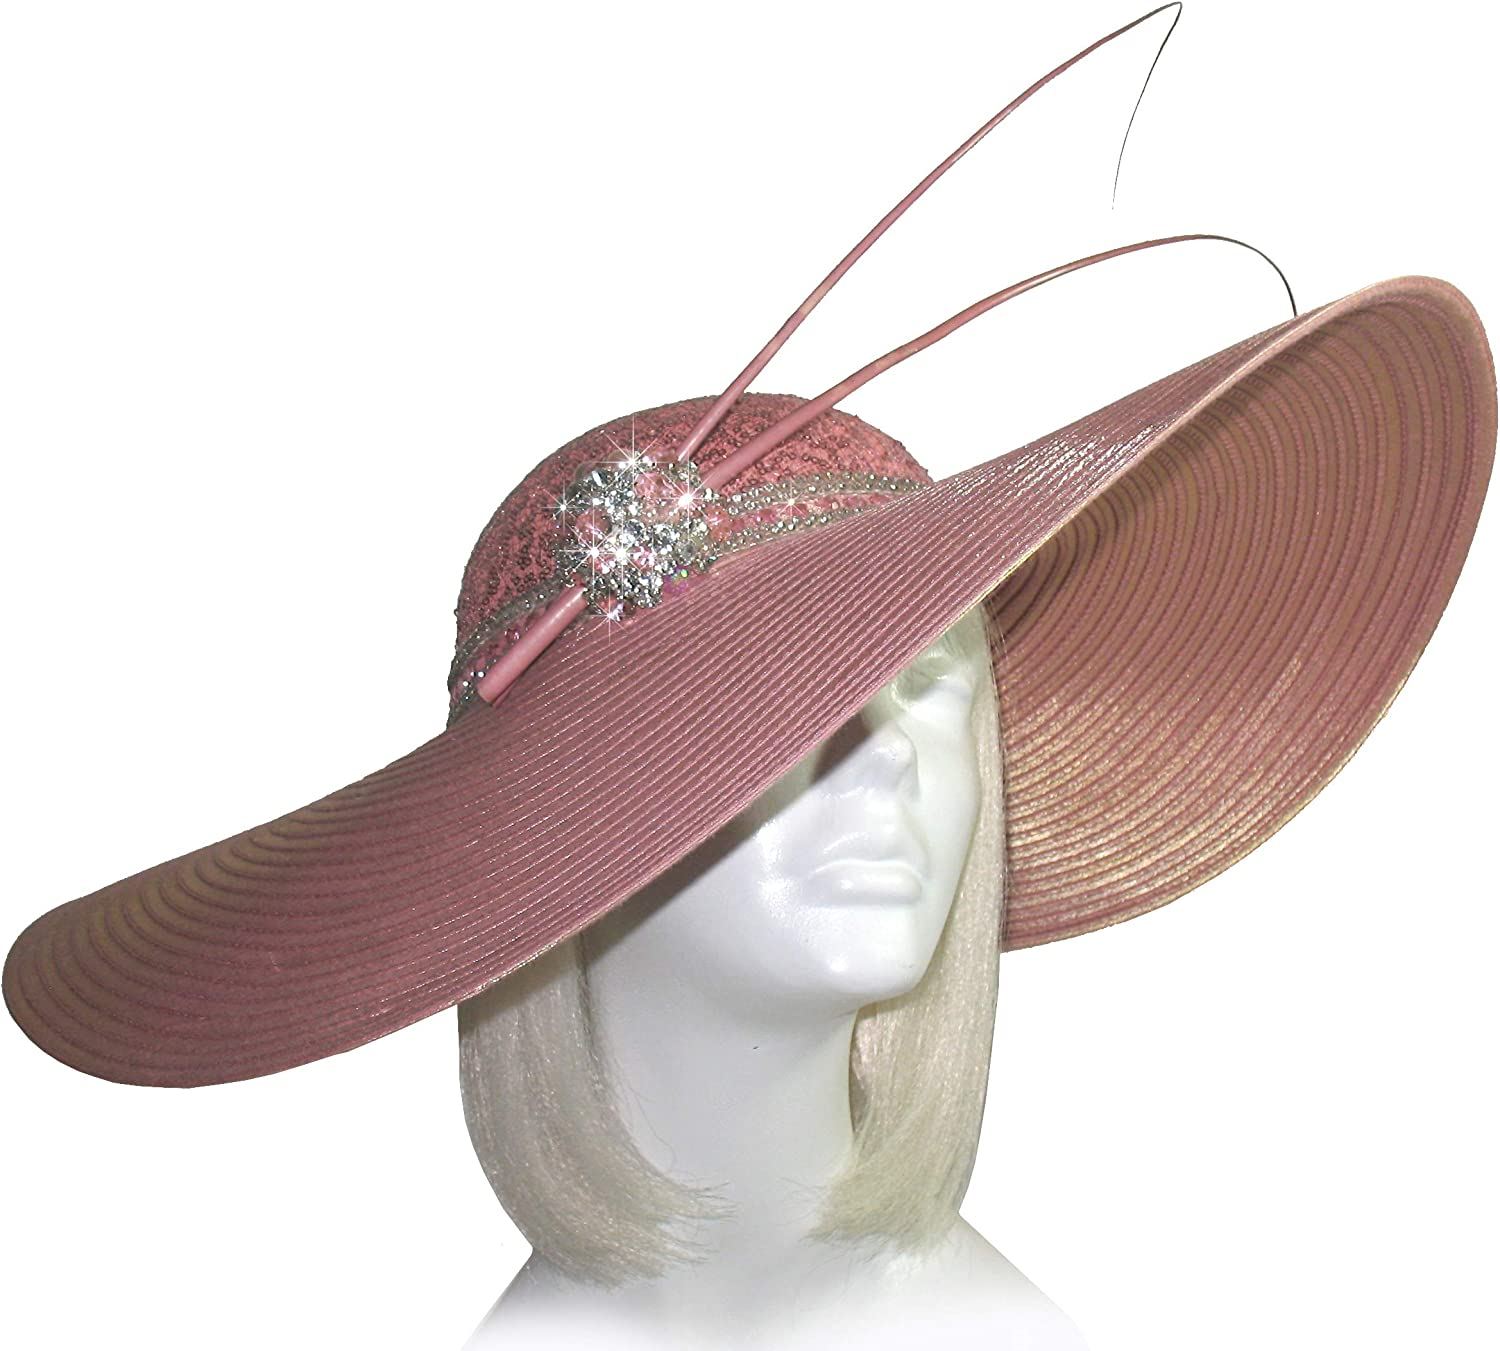 Ribbonwork Bonnet MINT Child/'s Ruffled Brim cream colored hat with pink ribbon work accents FFs1078a